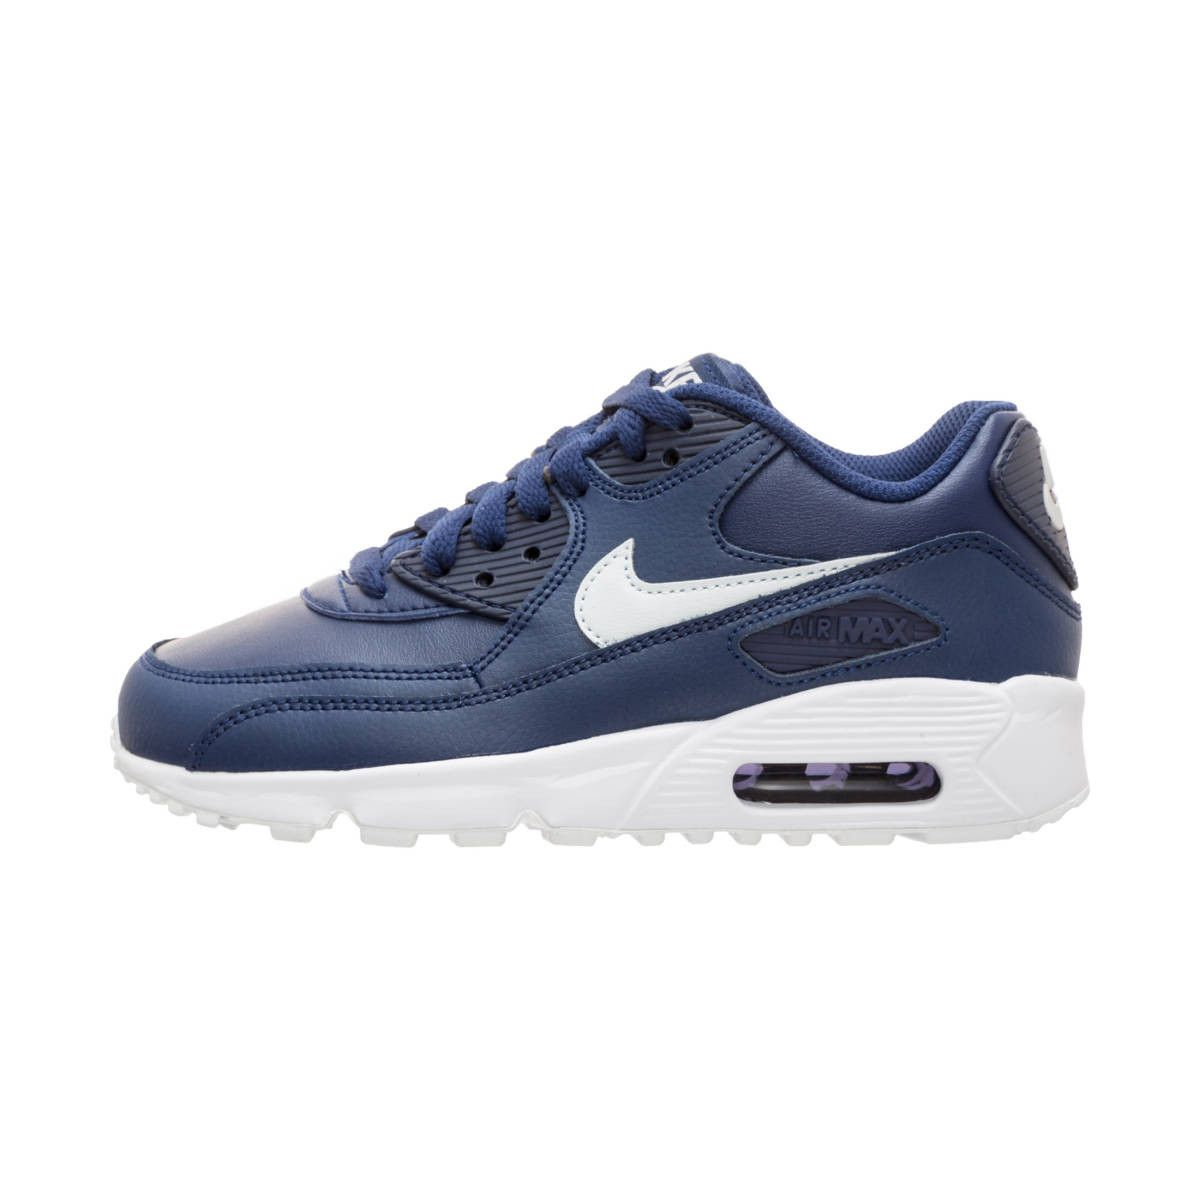 site réputé 840b8 36a6d Baskets Junior Nike AIR MAX 90 LTR GS - Pegashoes